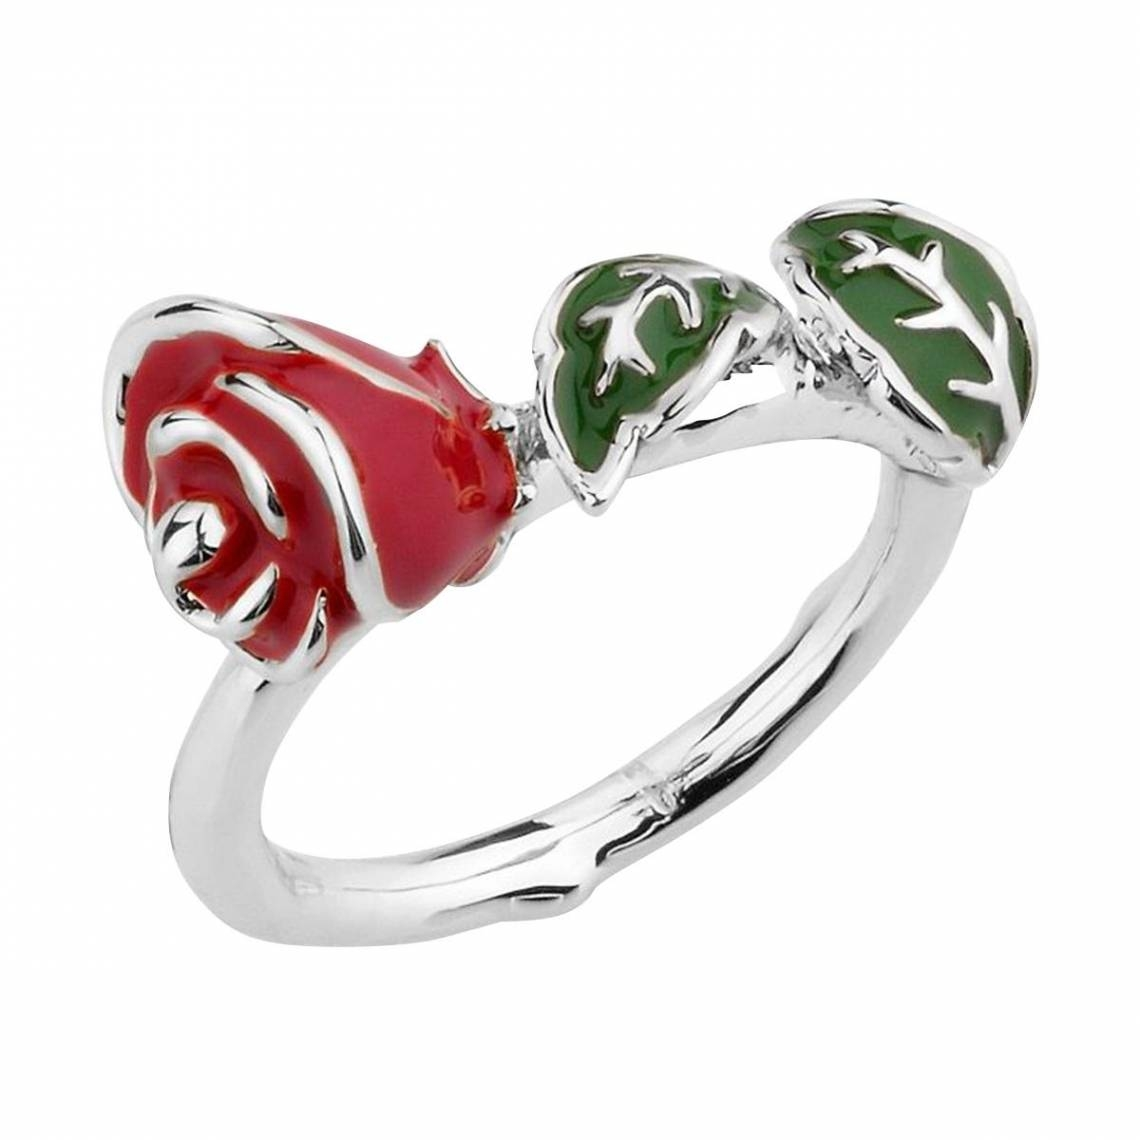 Wedding Rings : Deadpool Wedding Band Deadpool Pop Ring Pop Mens Pertaining To Captain America Wedding Bands (View 15 of 15)